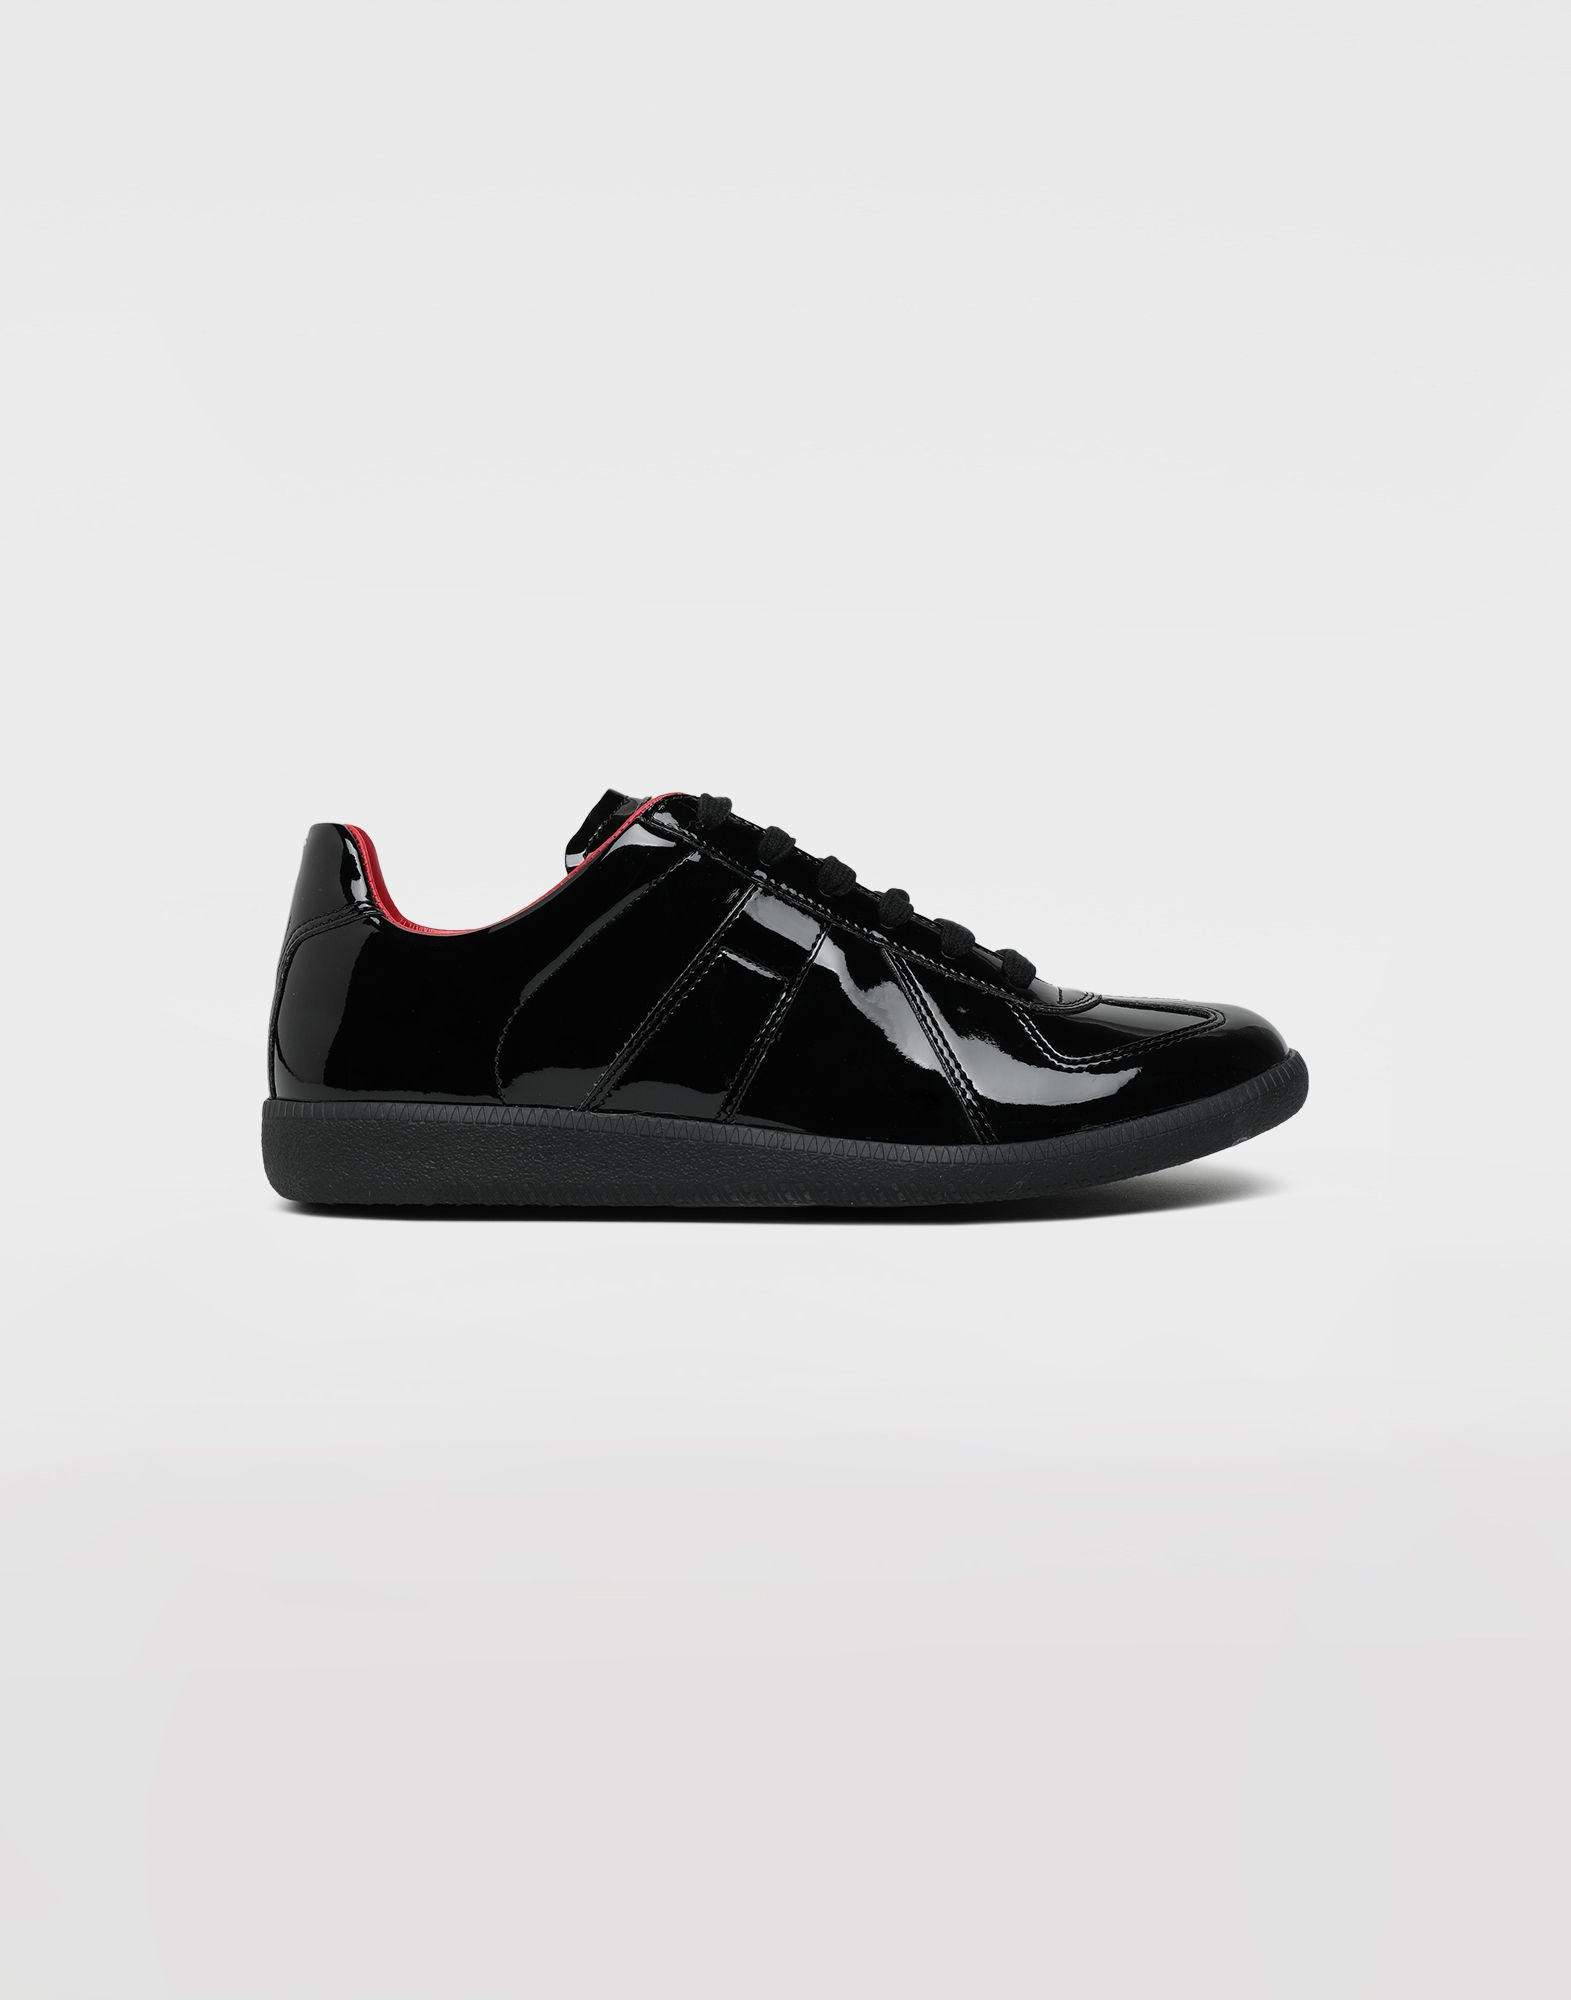 MAISON MARGIELA Replica patent leather sneakers Sneakers Man f